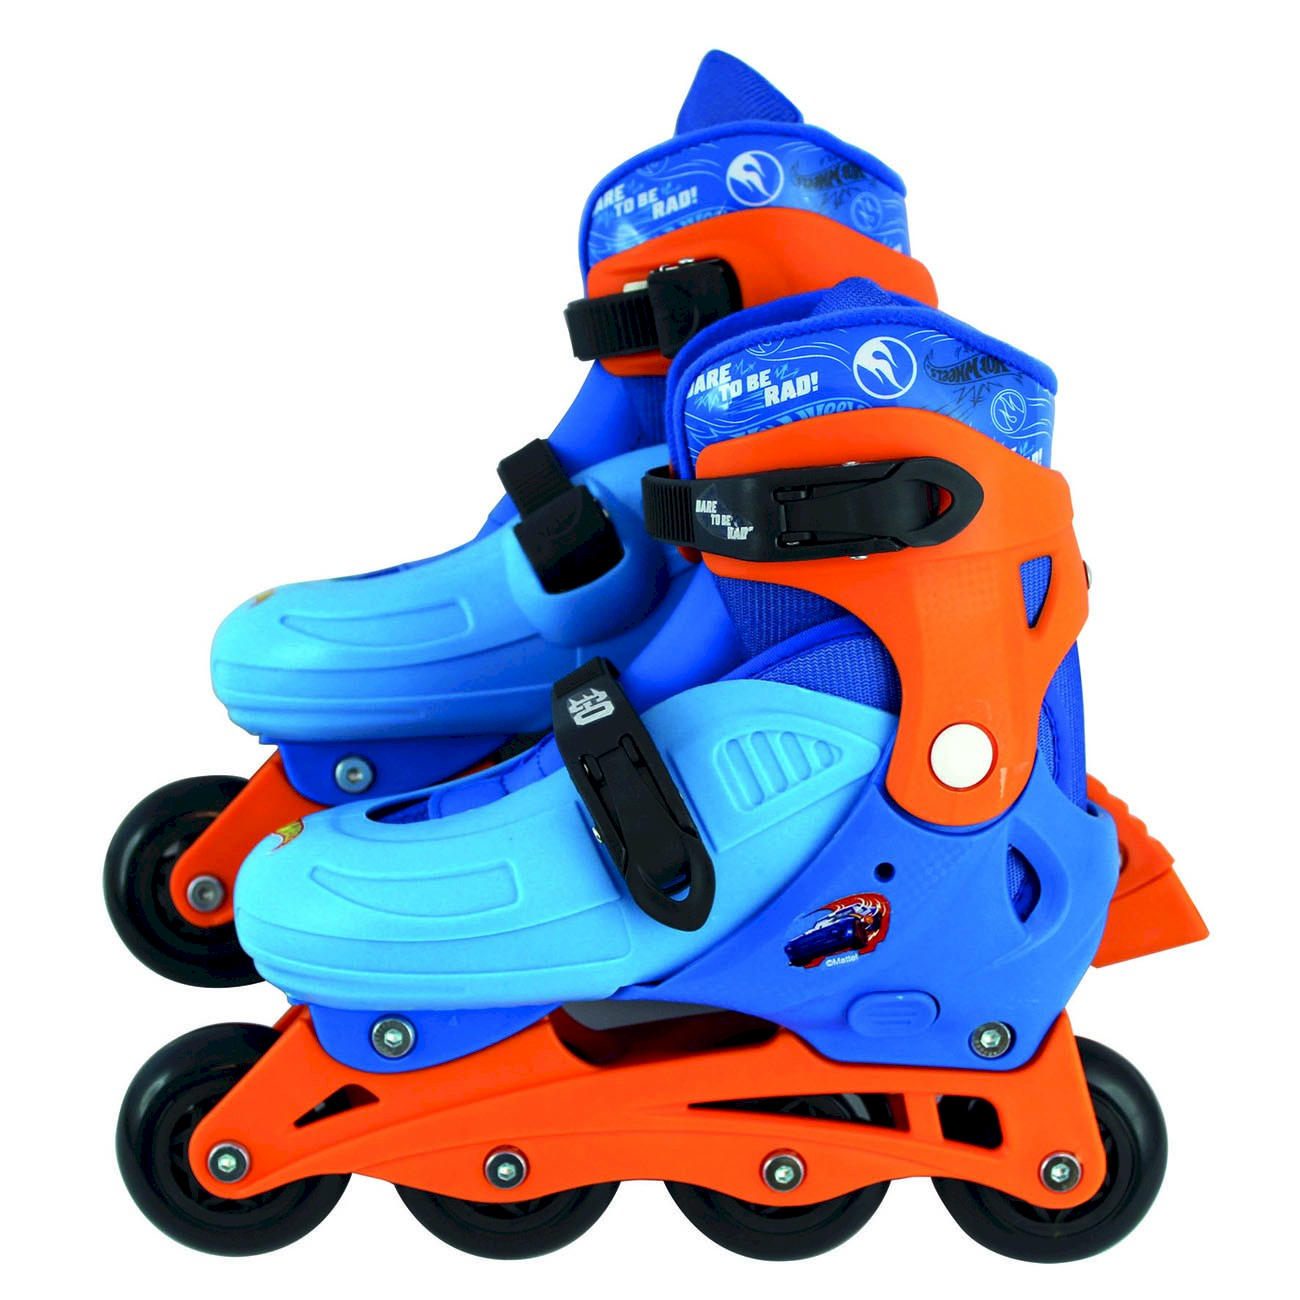 Hot Wheels Patines - Talla S